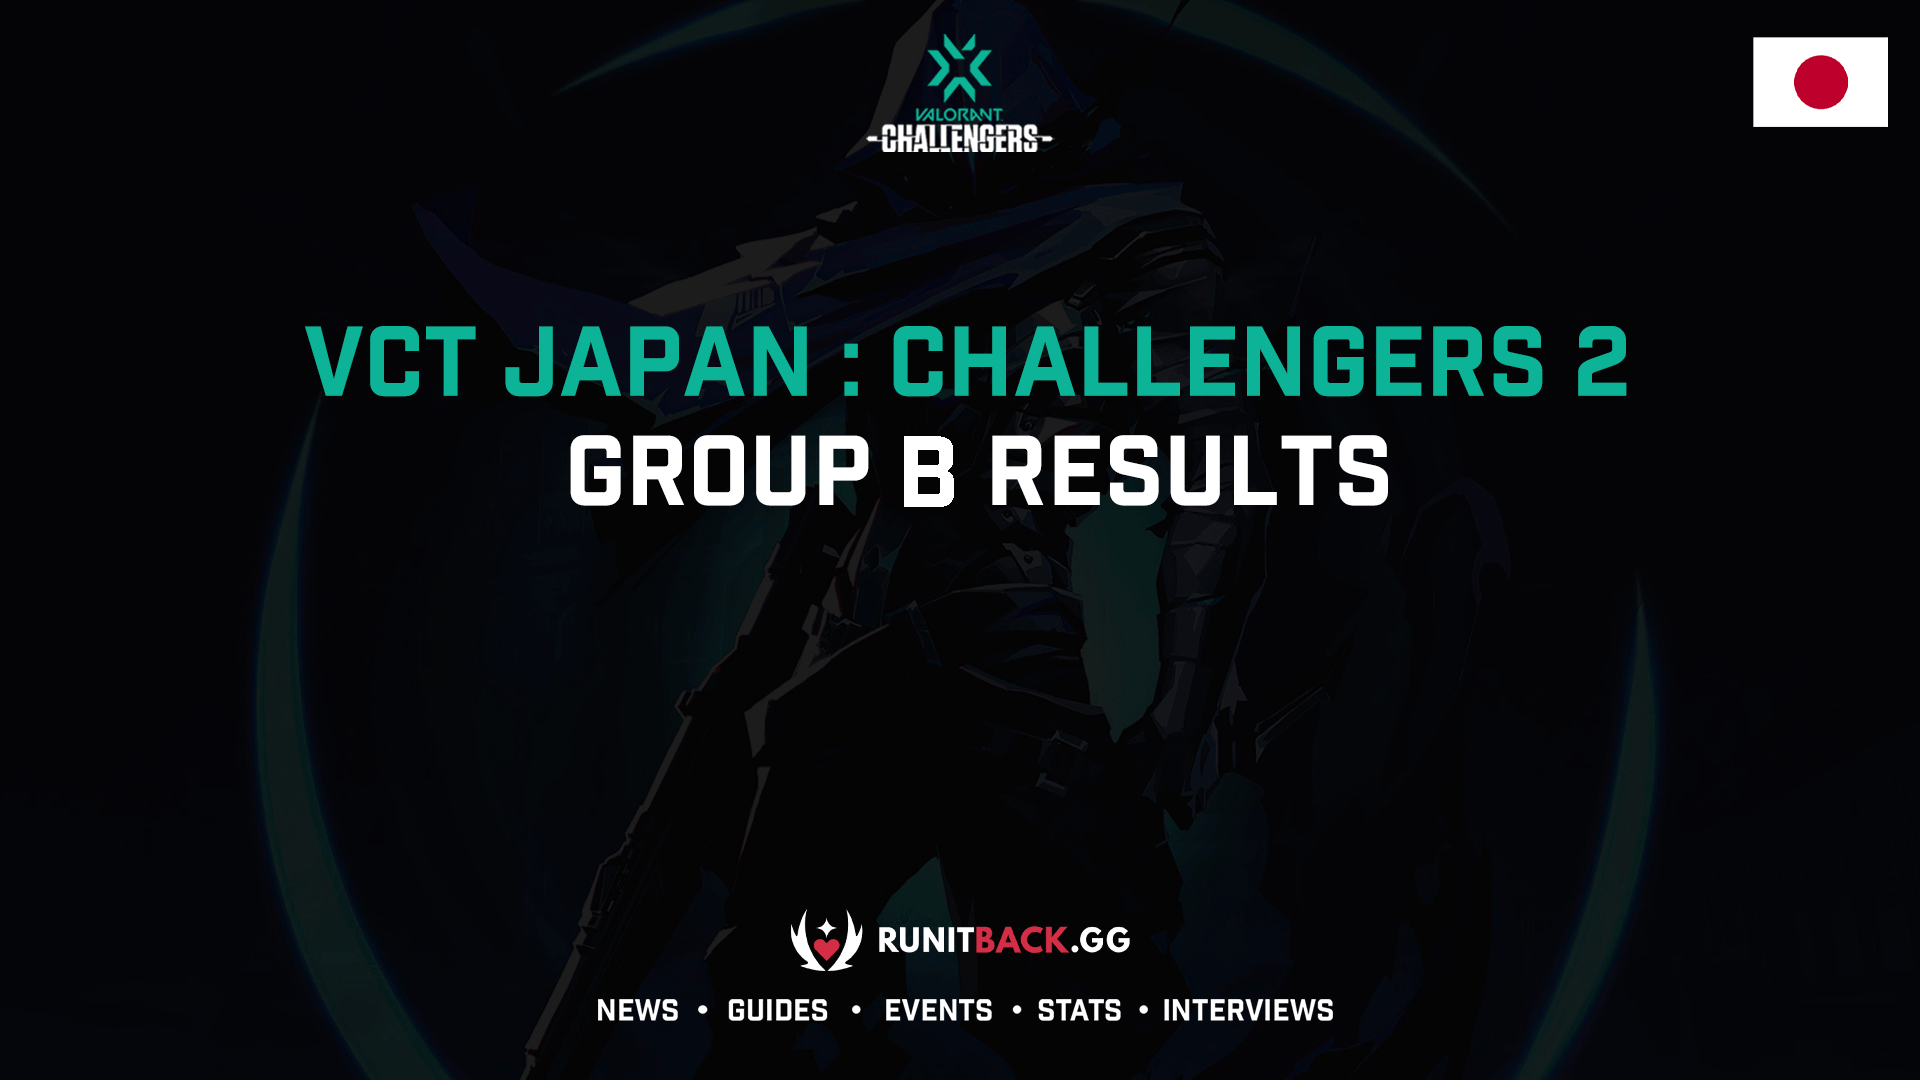 VCT Japan Challengers 2 Group B Results